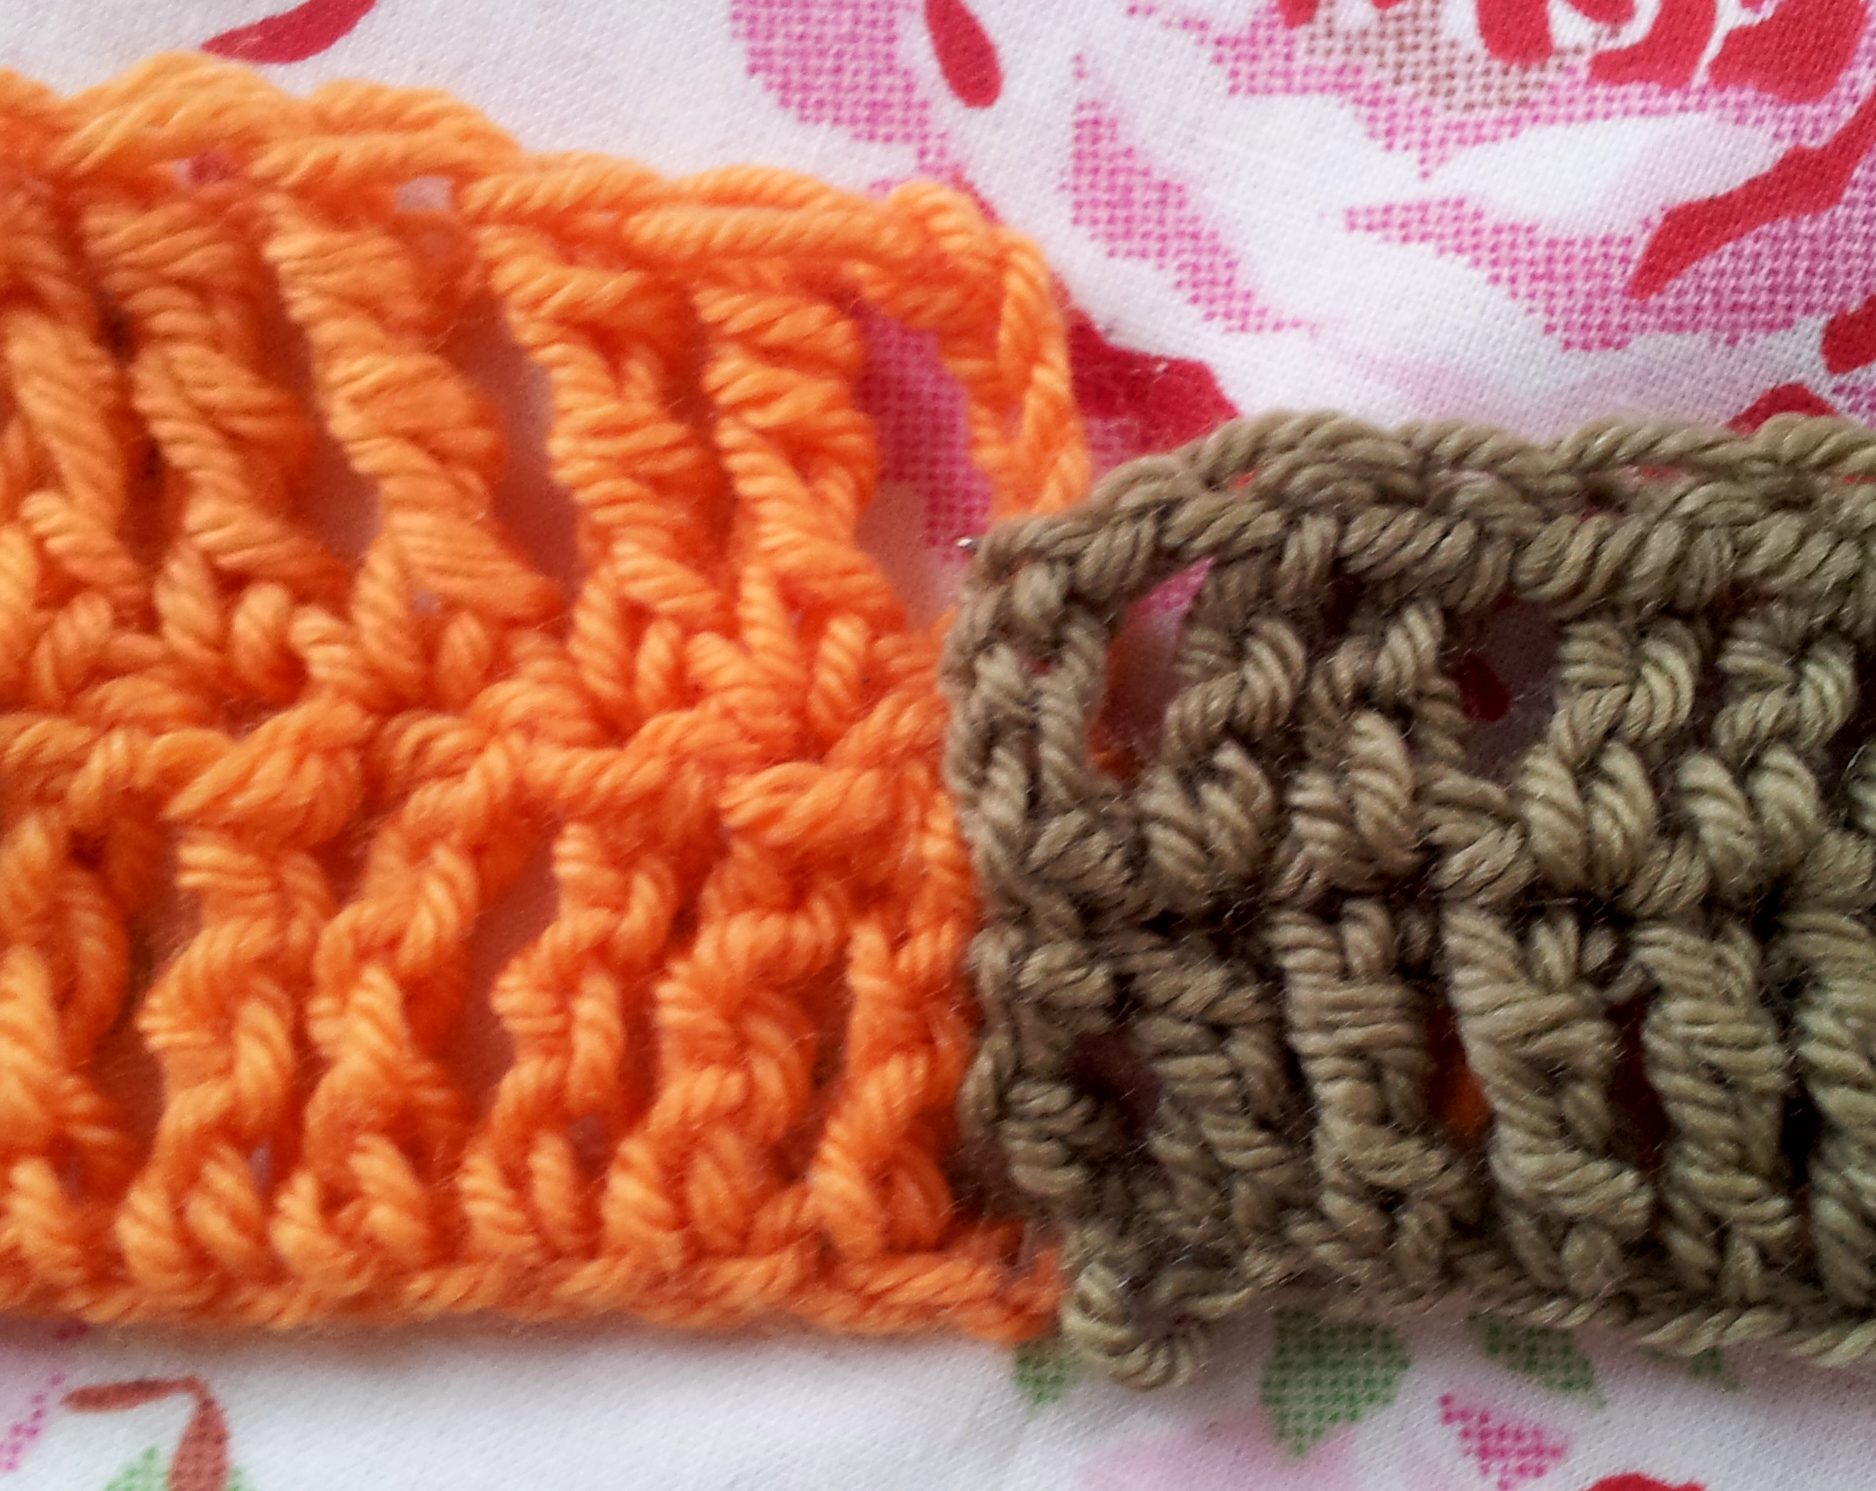 Crochet Stitches Us : for crochet? The triple treble (UK) or double treble (US) stitch ...